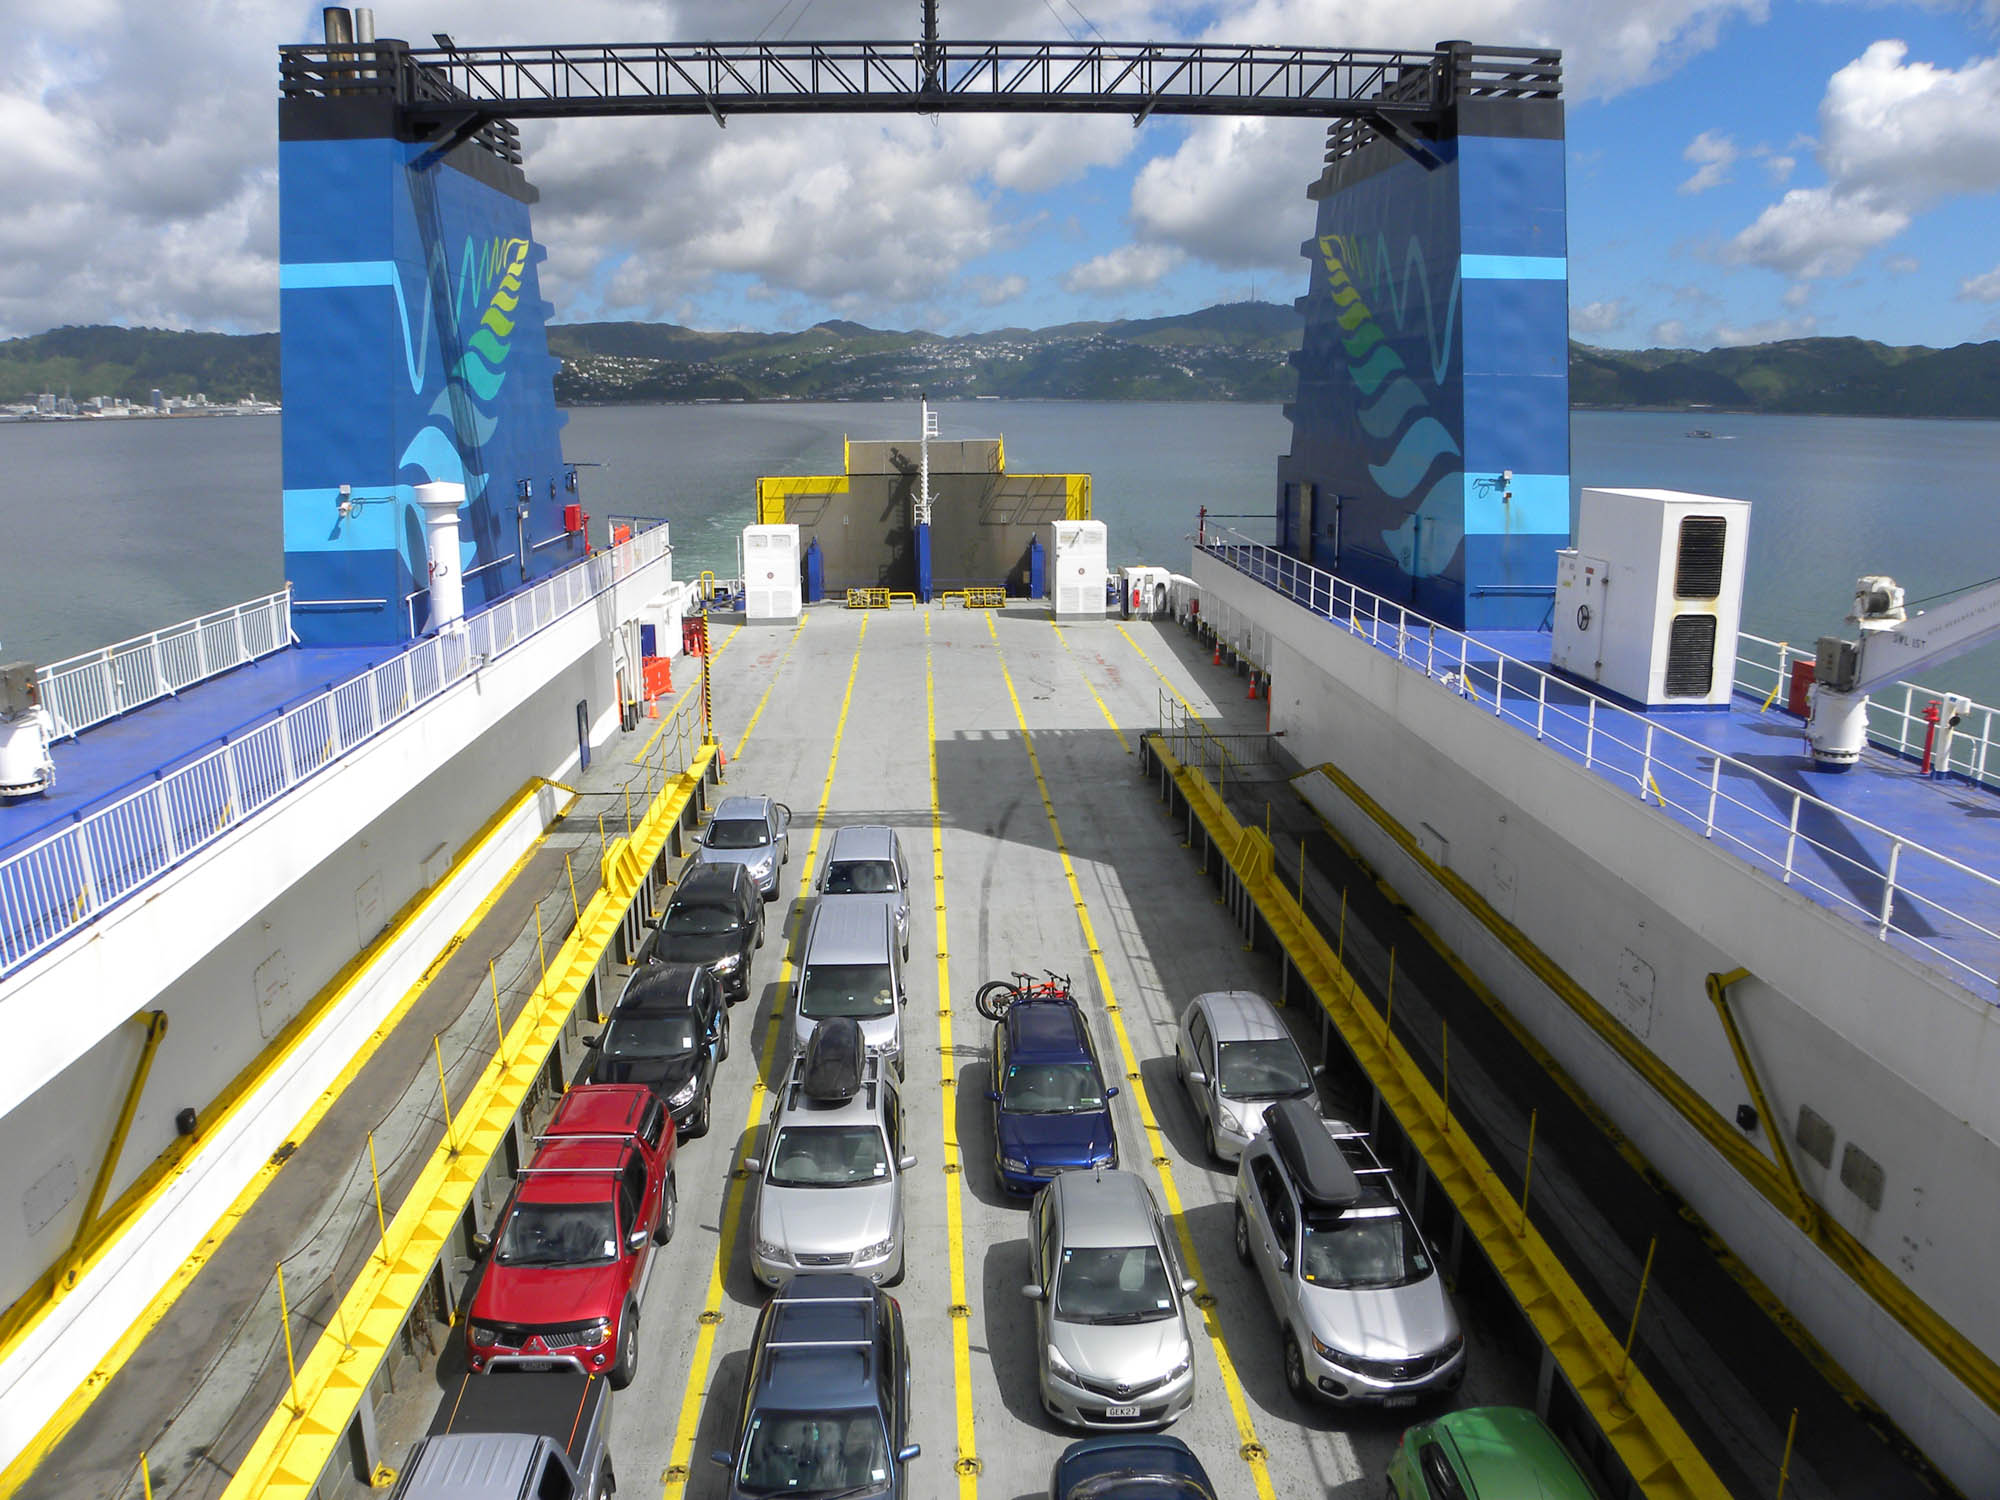 Cars on the ferry